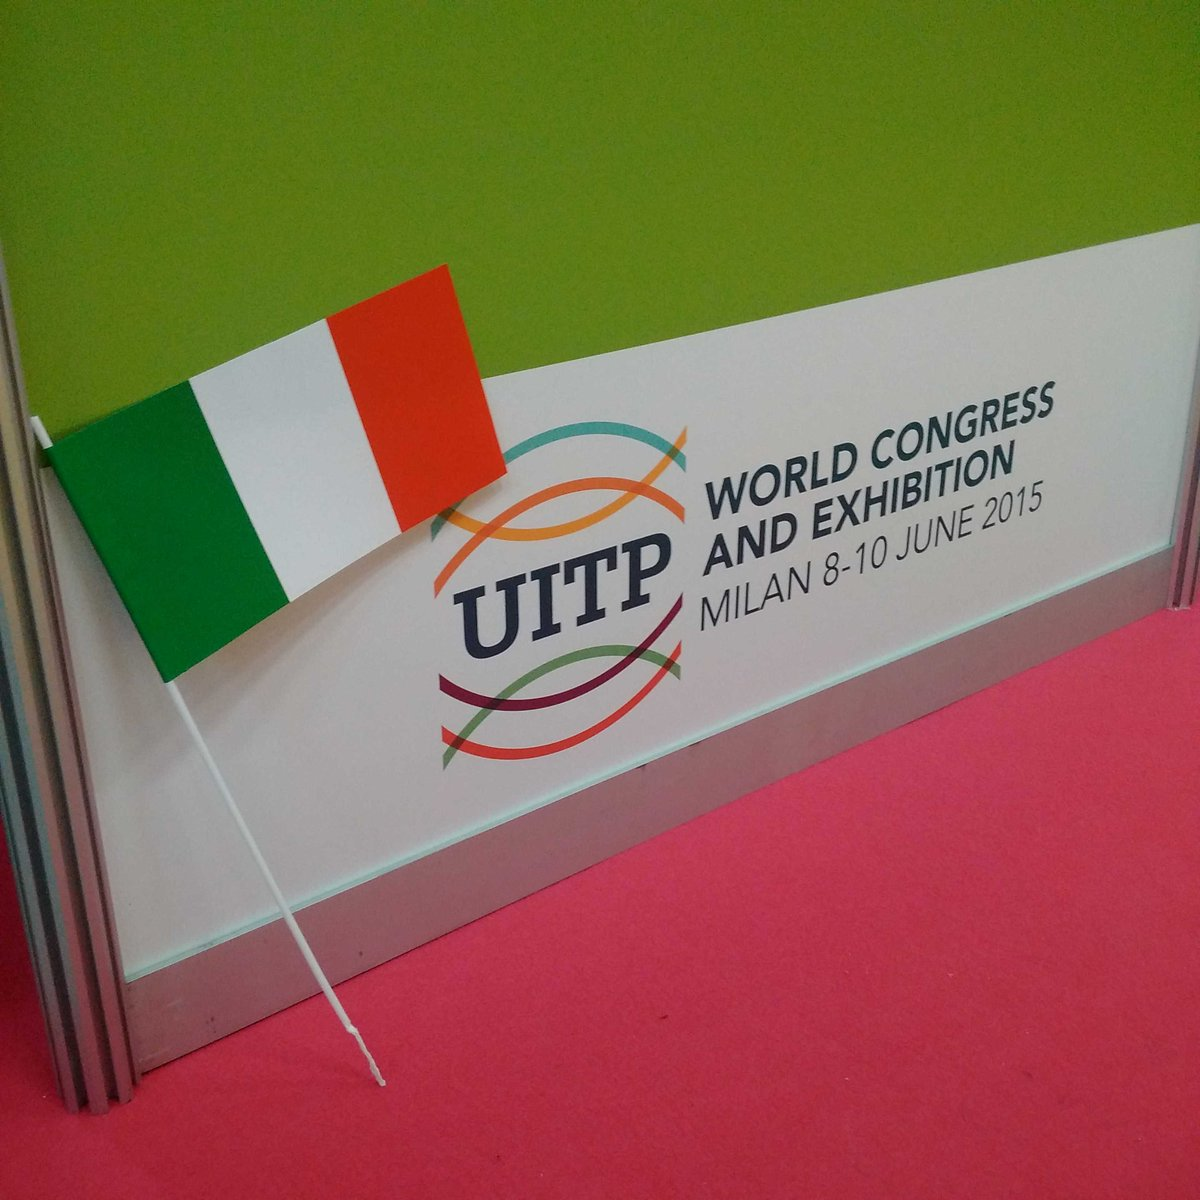 Thumbnail for #UITP2015 LIVE - 9 June 2015